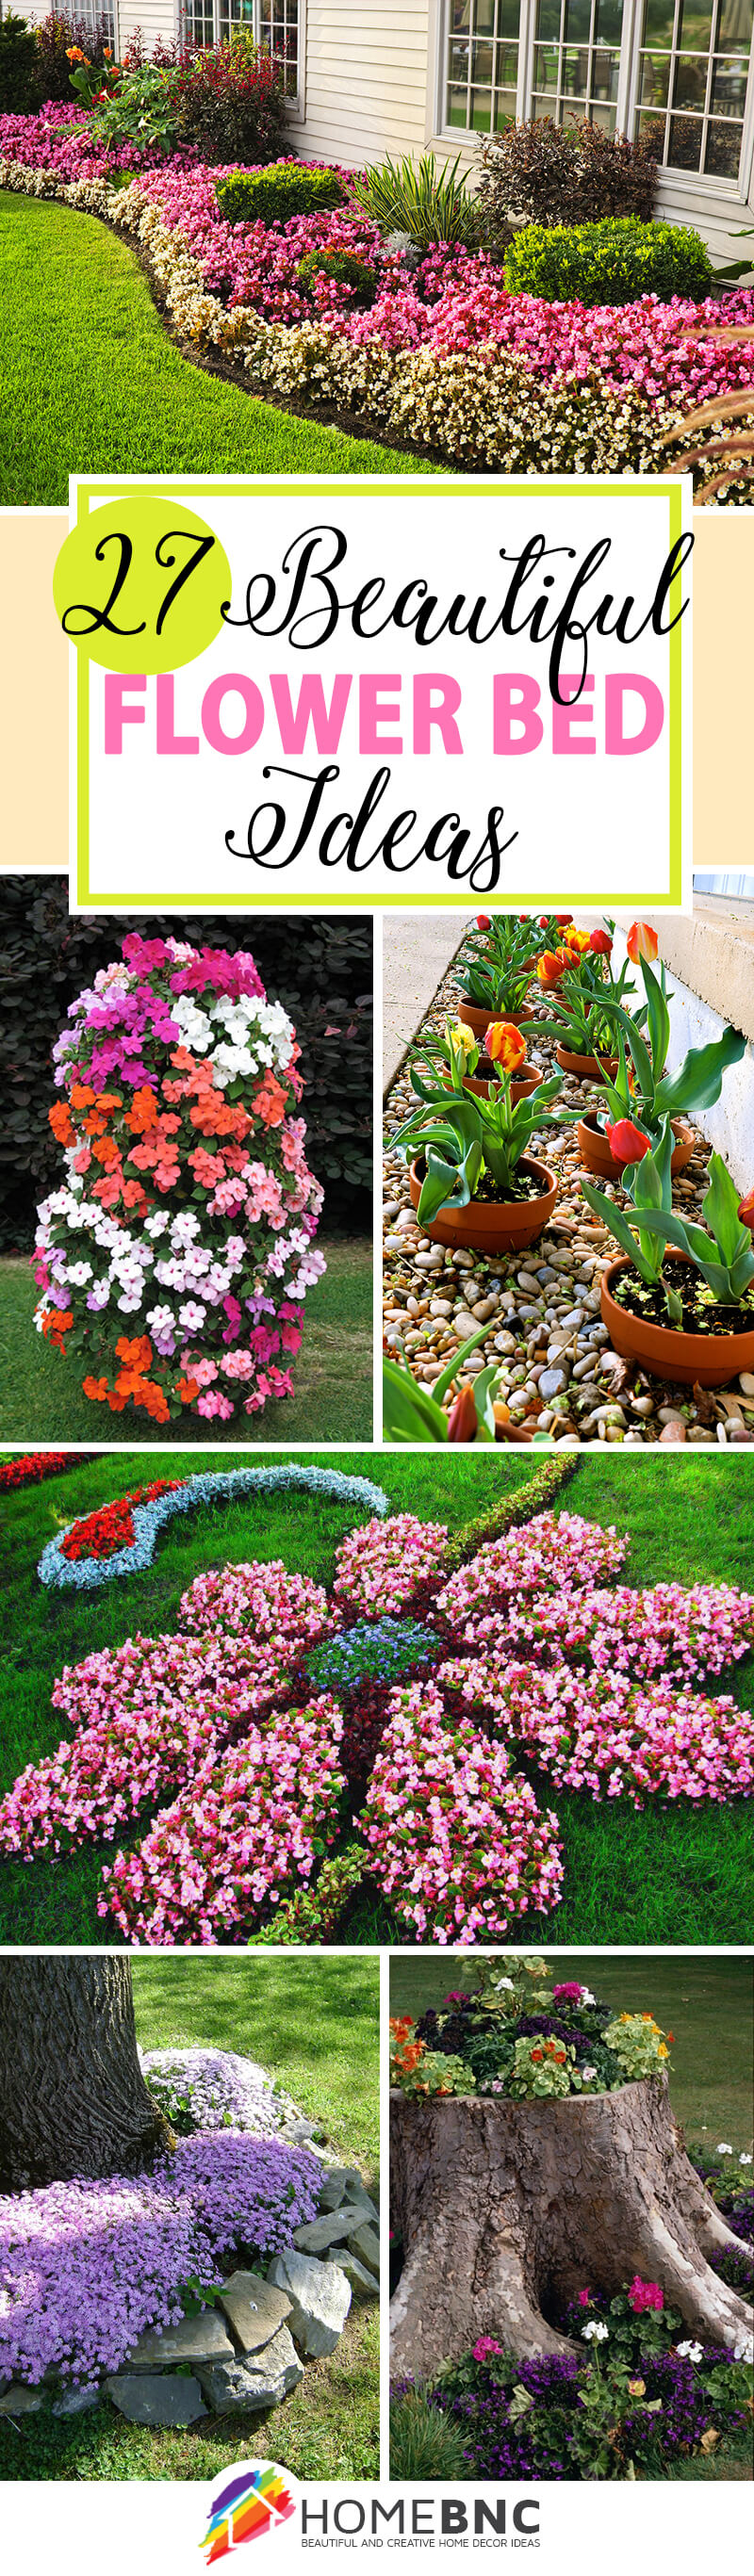 flower bed designs - Planting Beds Design Ideas